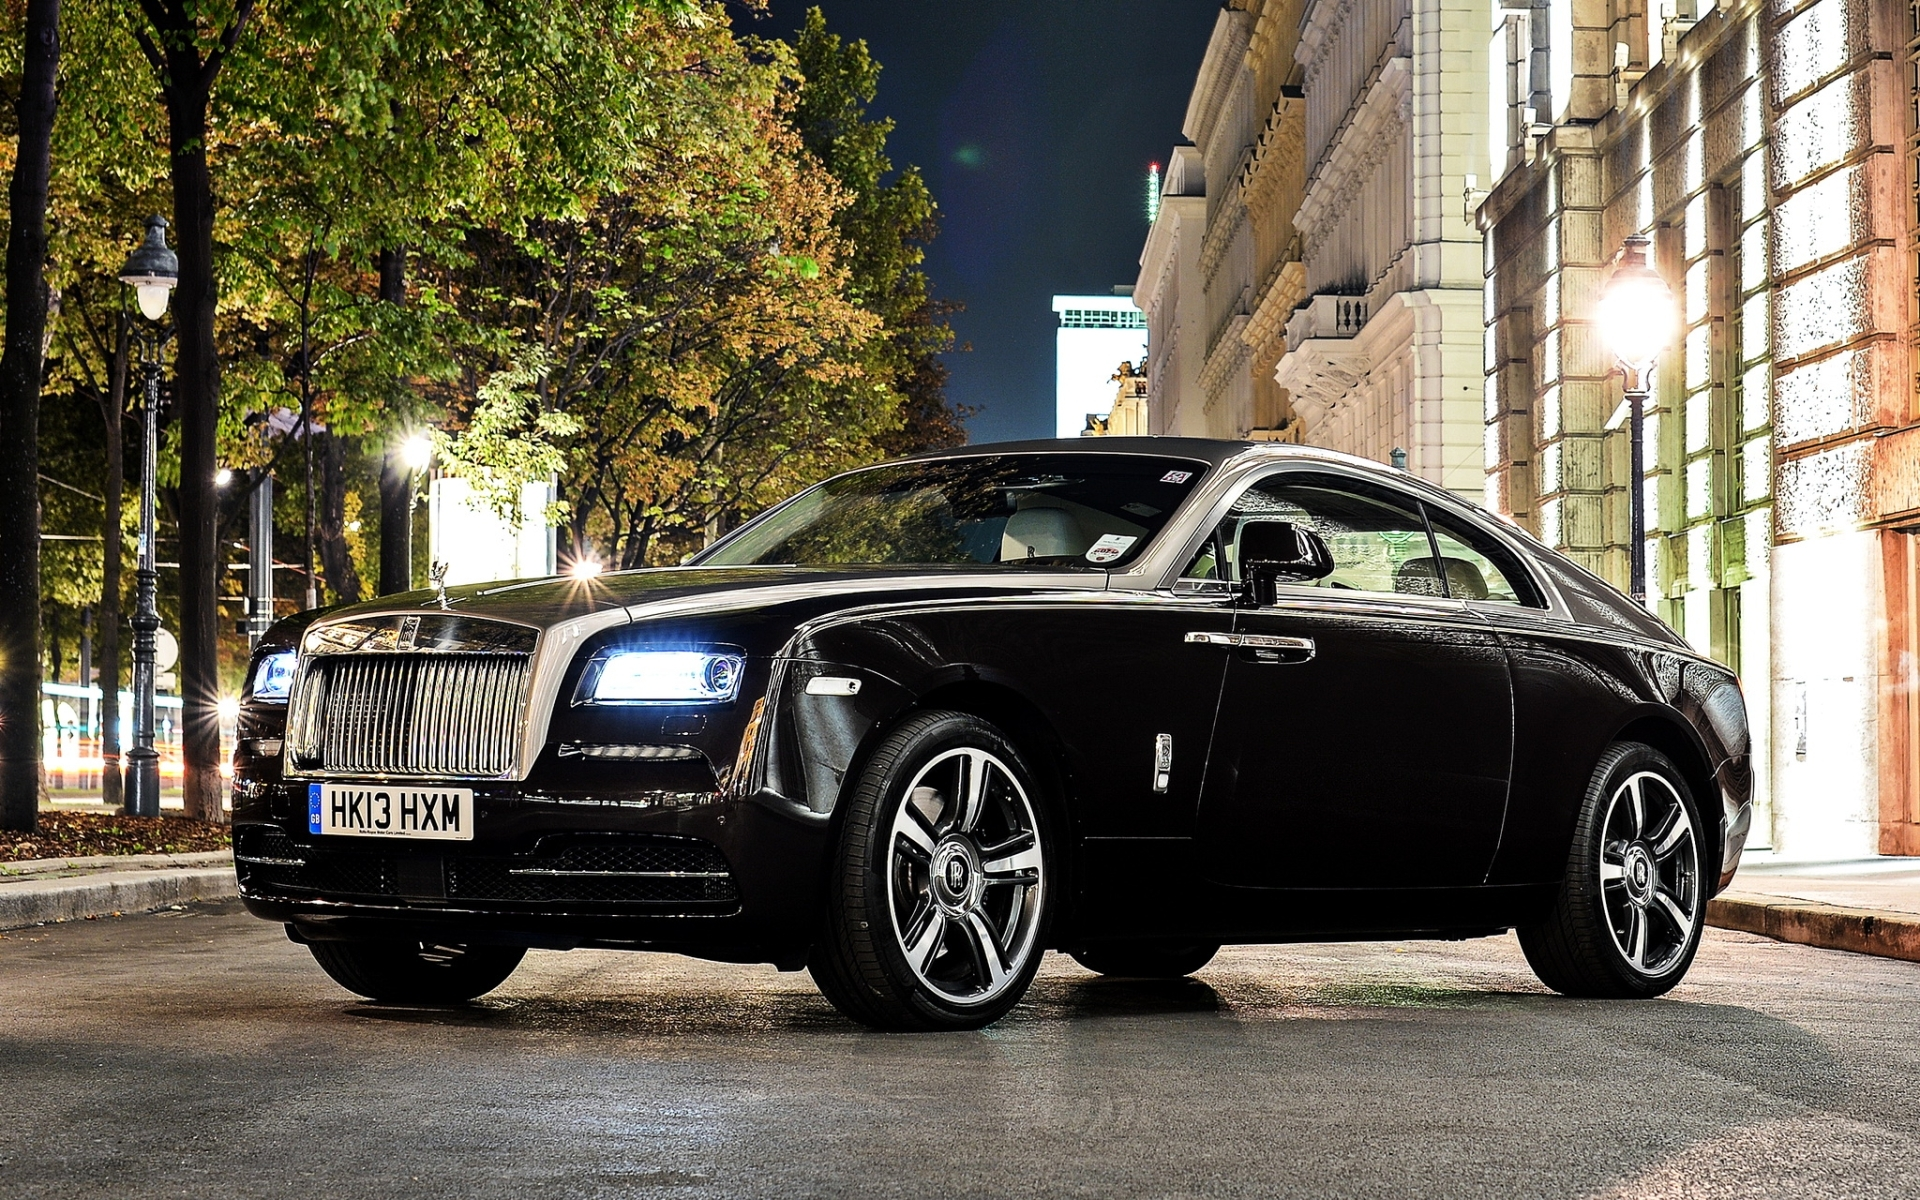 Rolls Royce Wraith Rolls Royce Wraith Wallpaper Hd Cars 4k Wallpapers Images Photos And Background